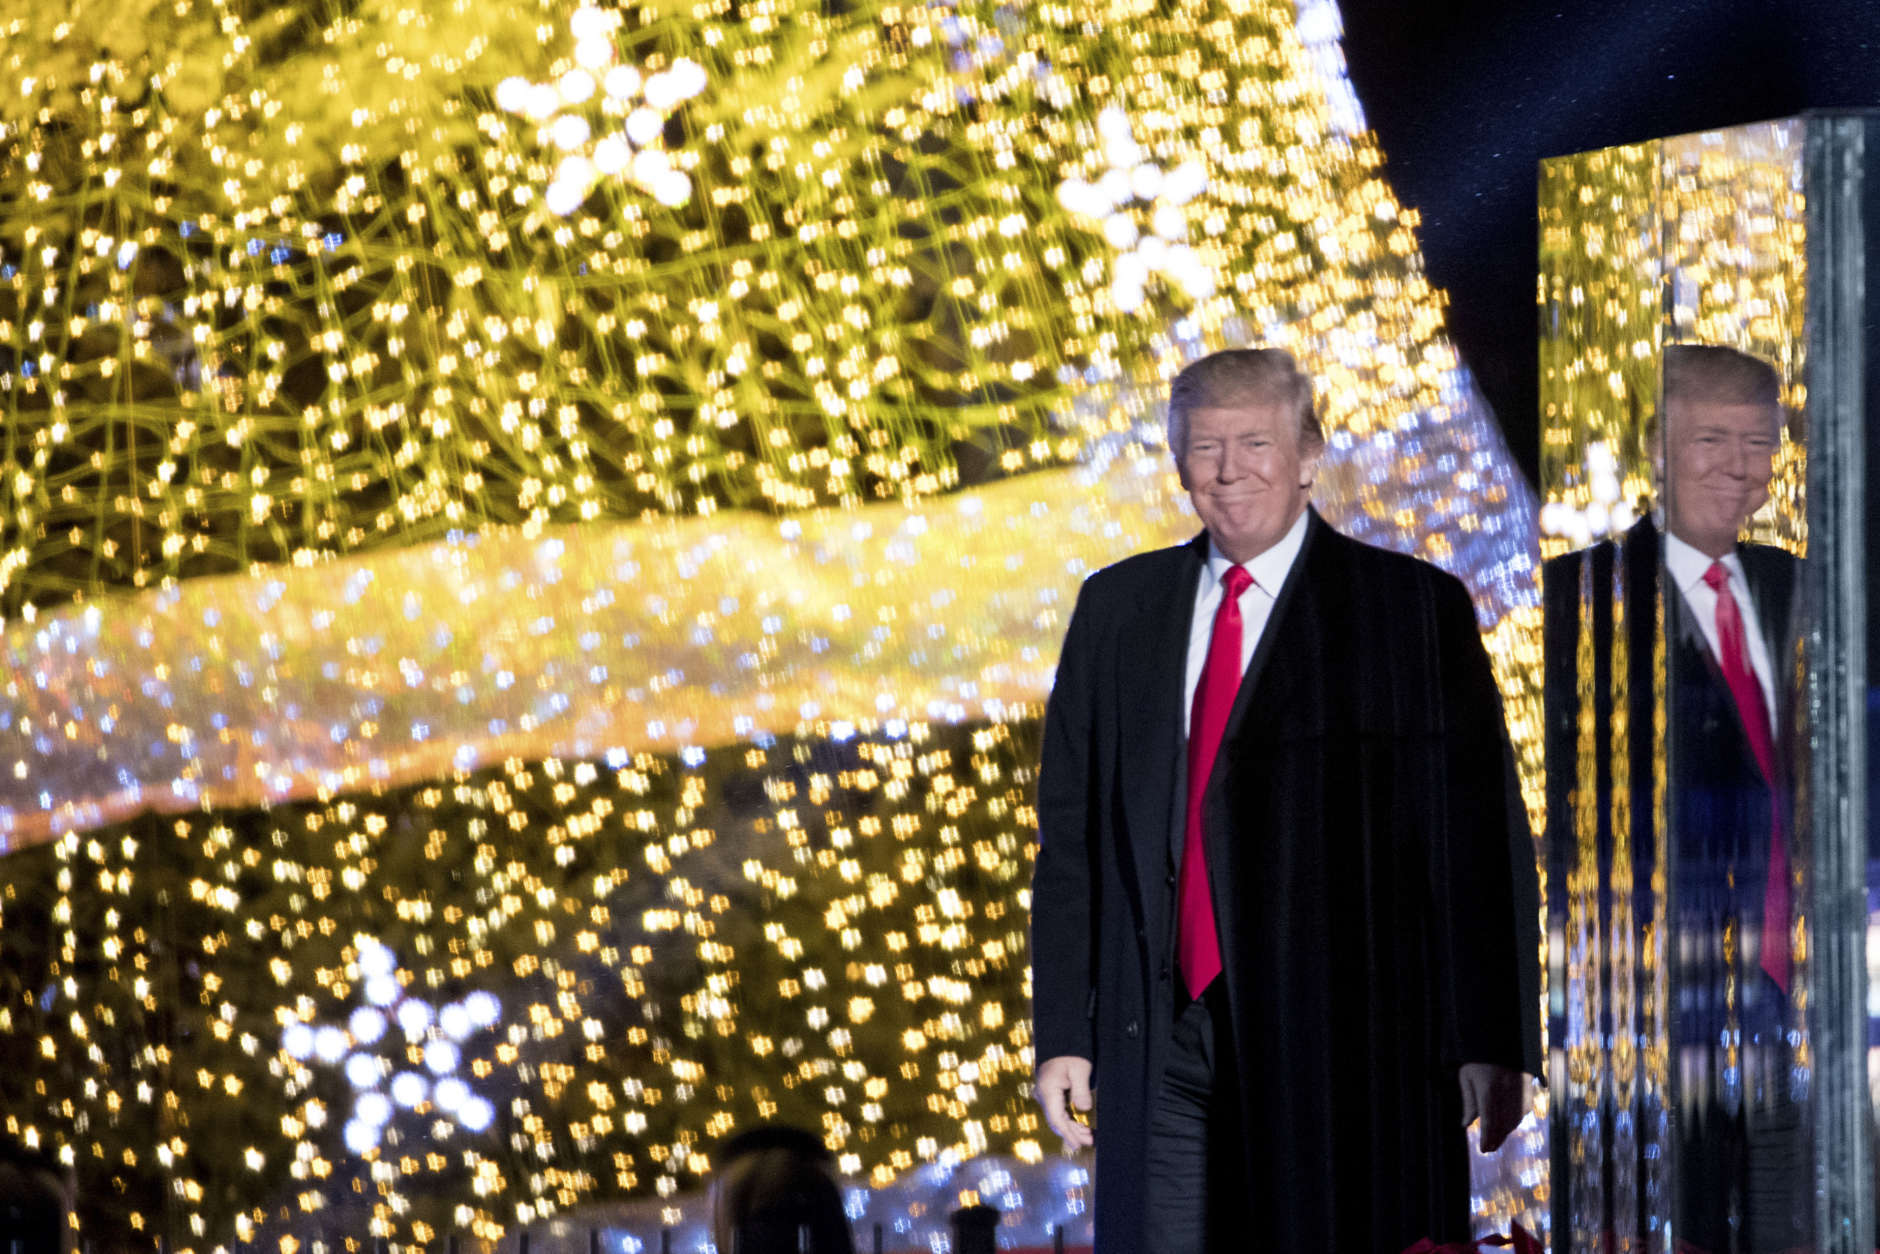 President Donald Trump stands on stage after lighting the 2017 National Christmas Tree on the Ellipse near the White House, Thursday, Nov. 30, 2017, in Washington. (AP Photo/Andrew Harnik)